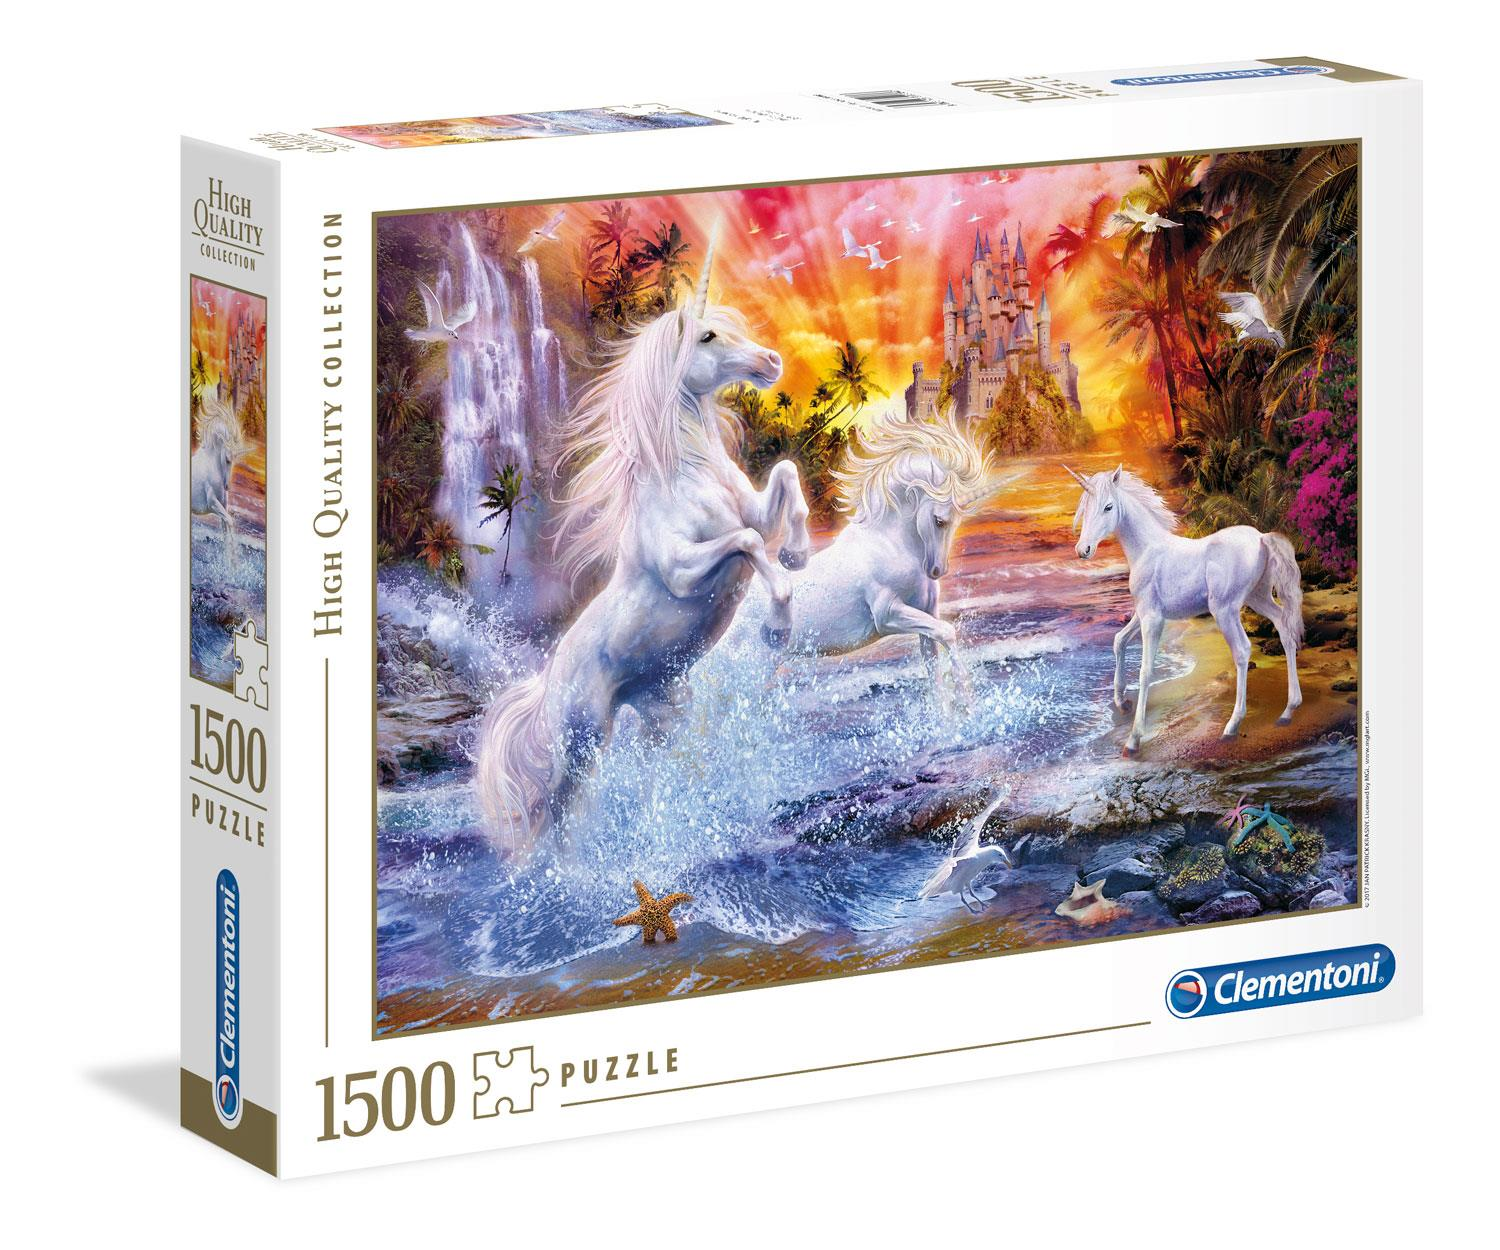 Clementoni Wild Unicorns High Quality Jigsaw Puzzle (1500 Pieces)